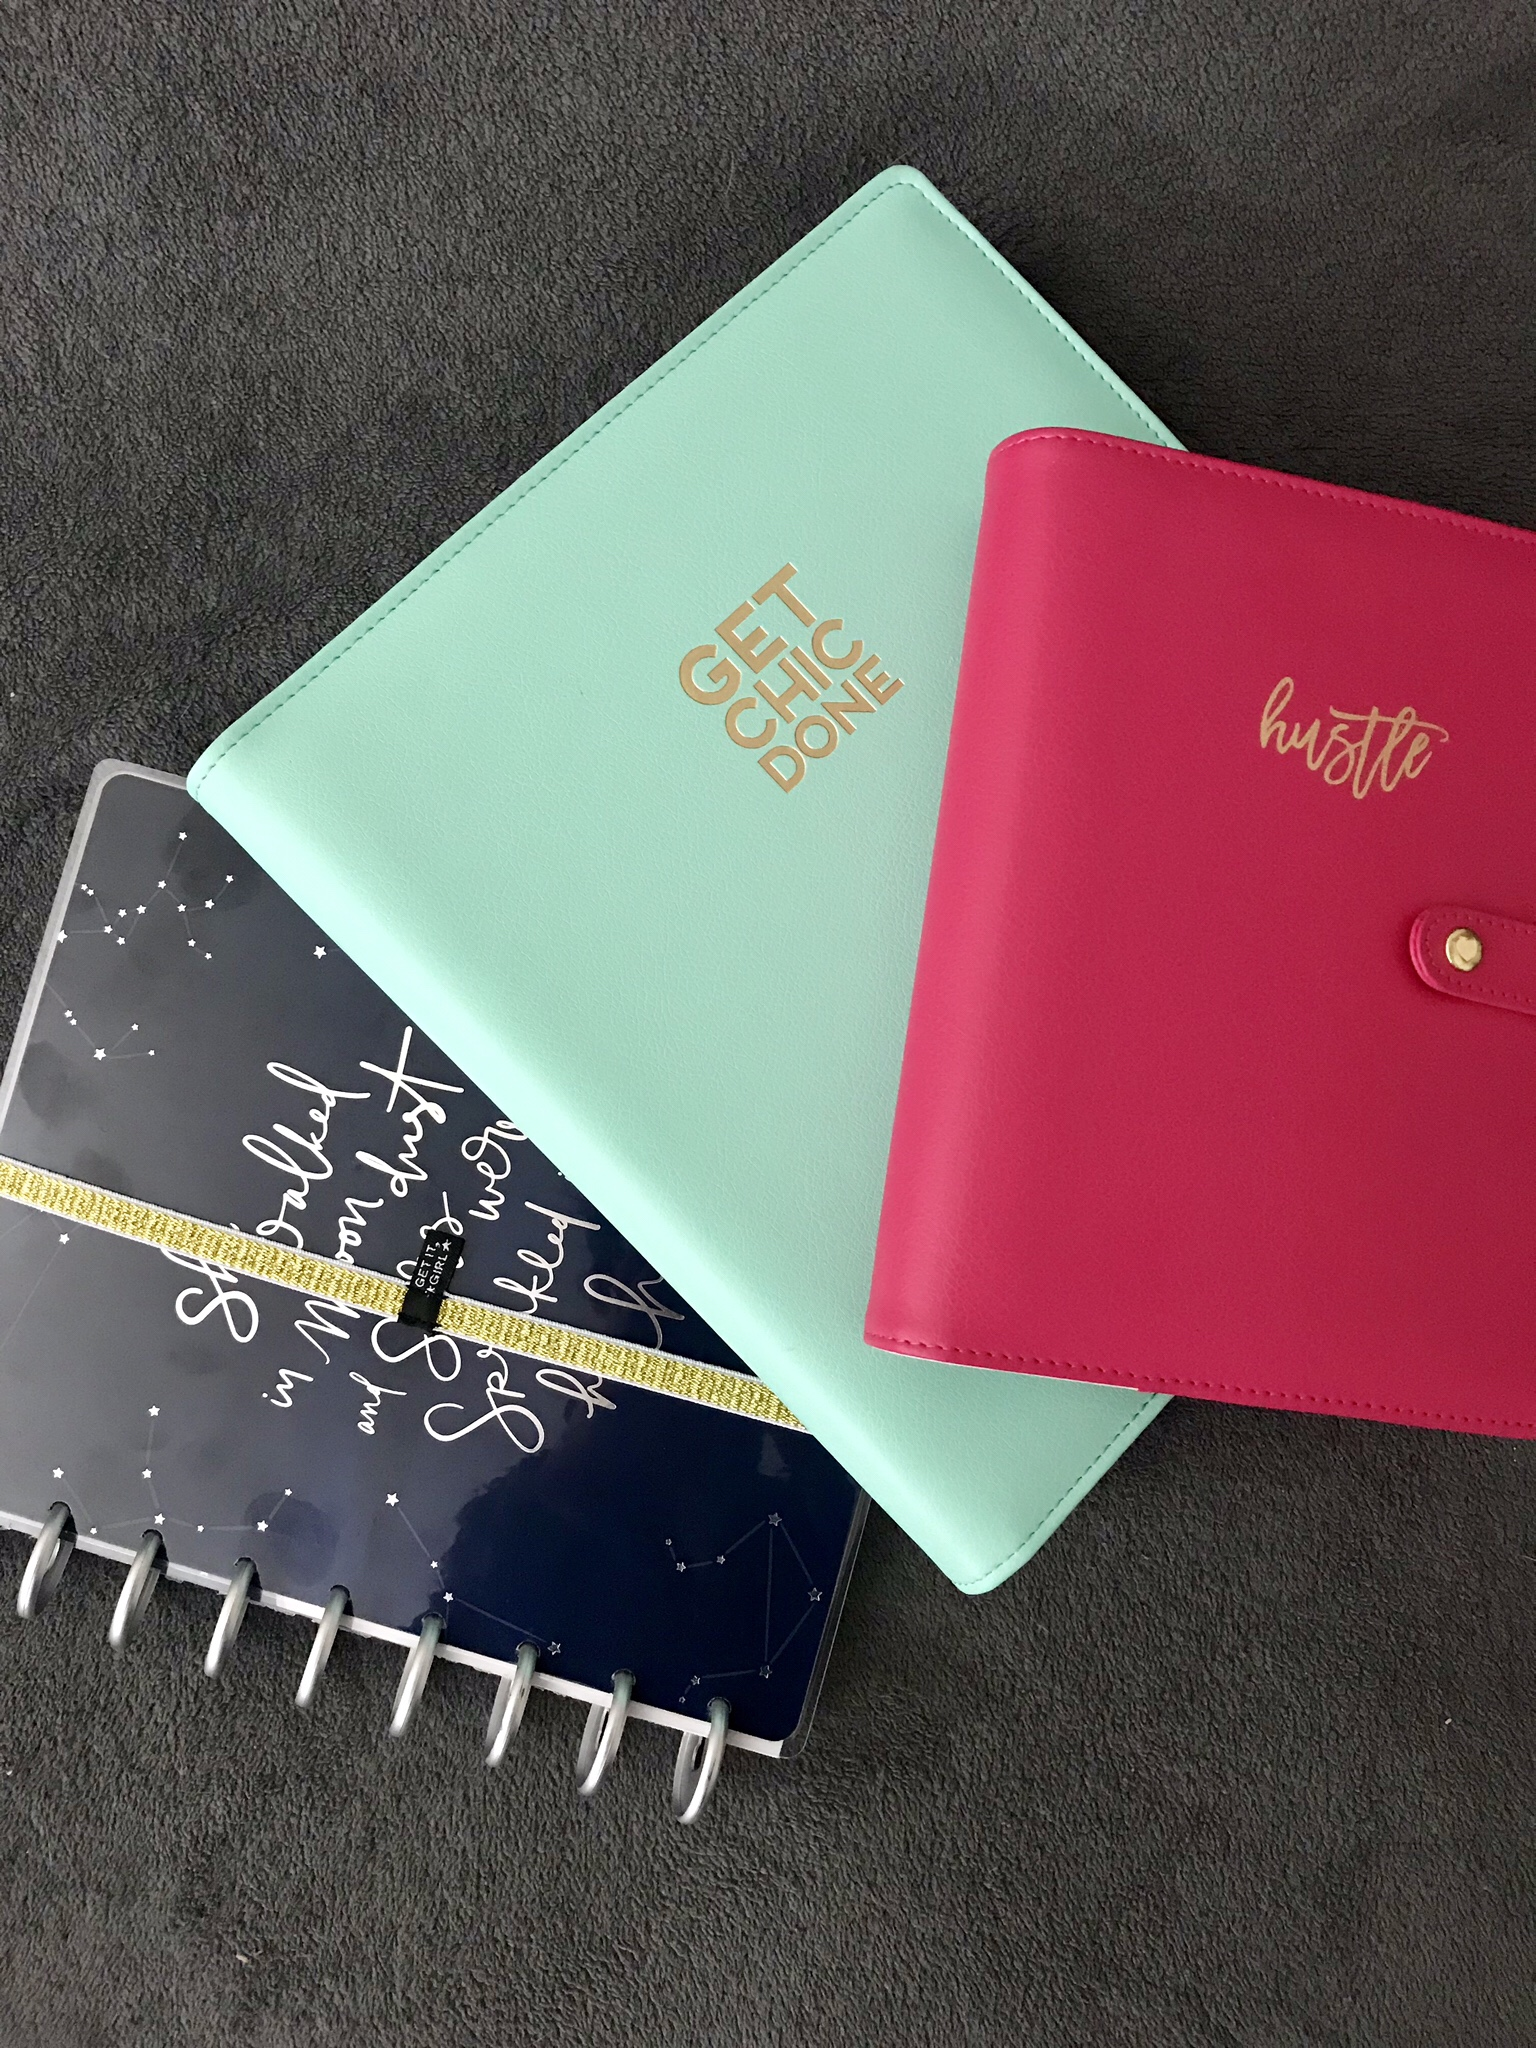 3 Planners For 2018 and Why